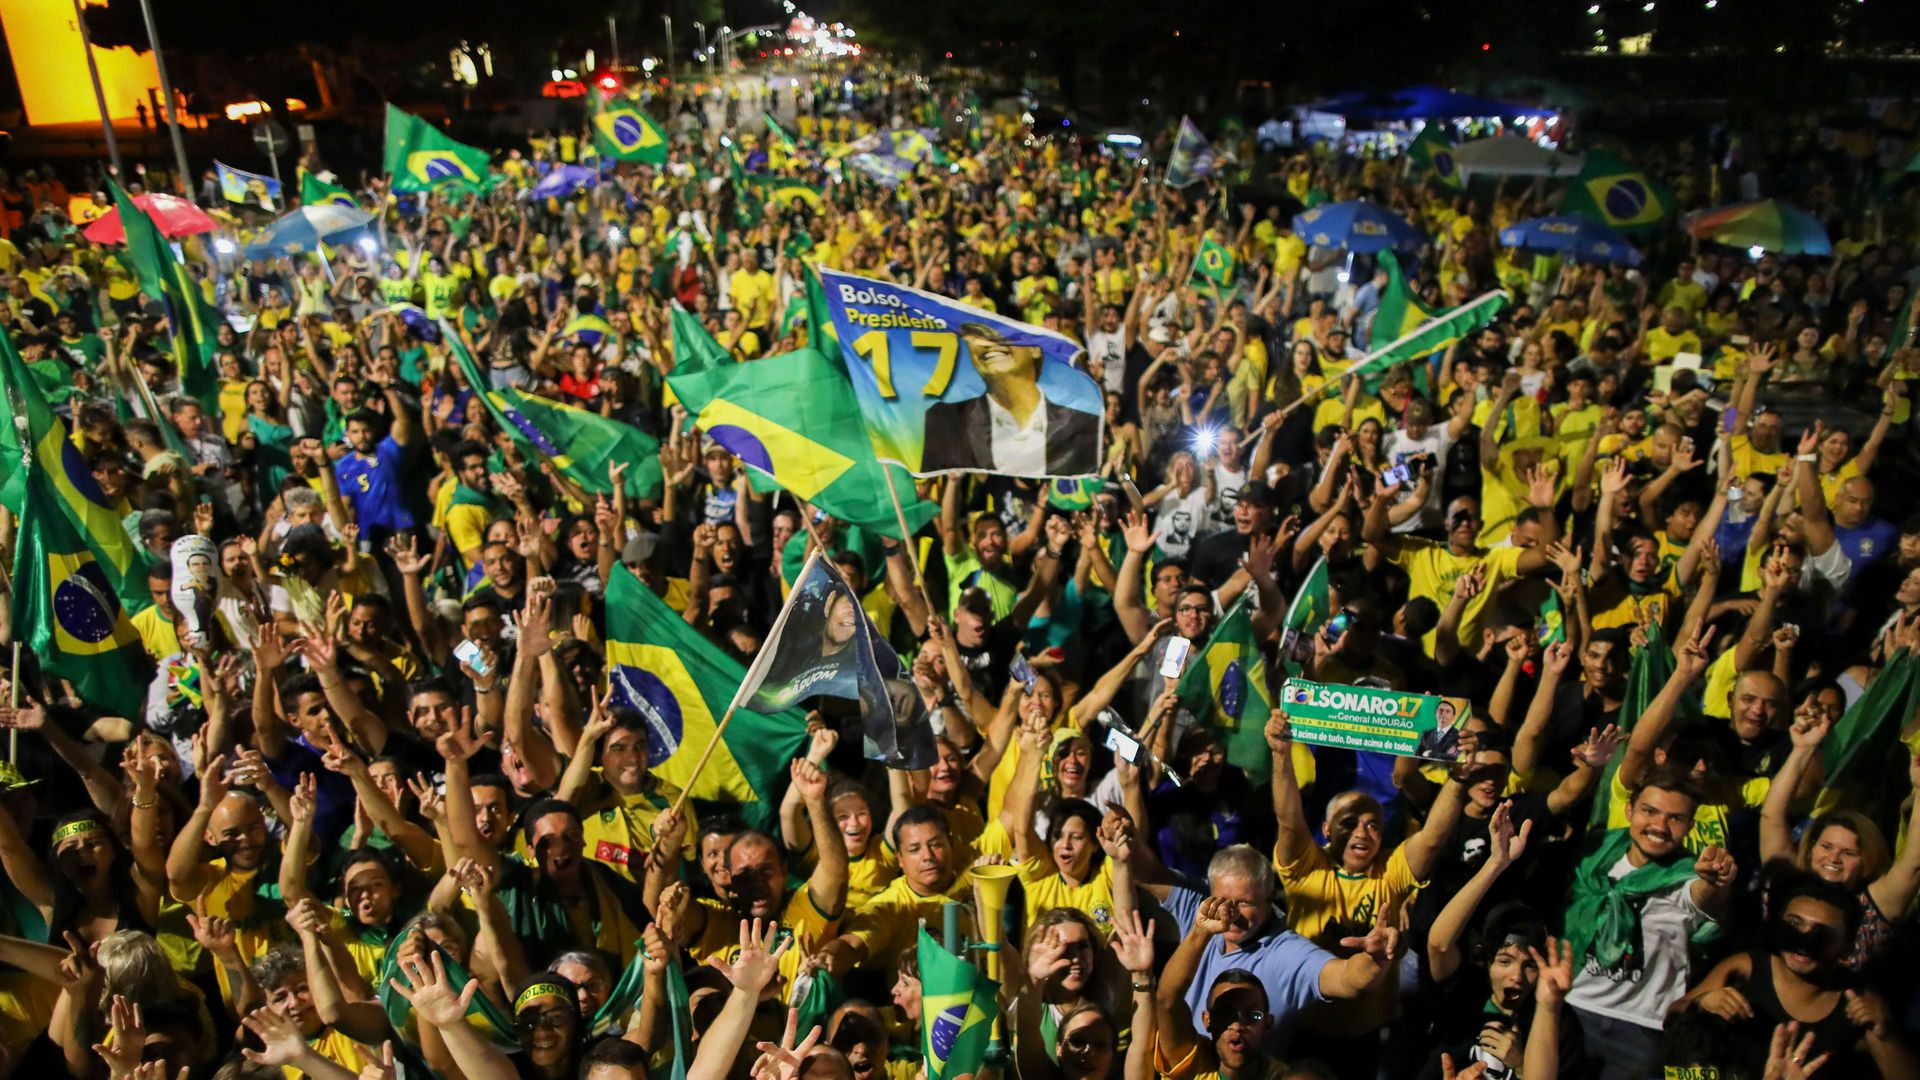 Crowd of cheering people holding Brazilian flags